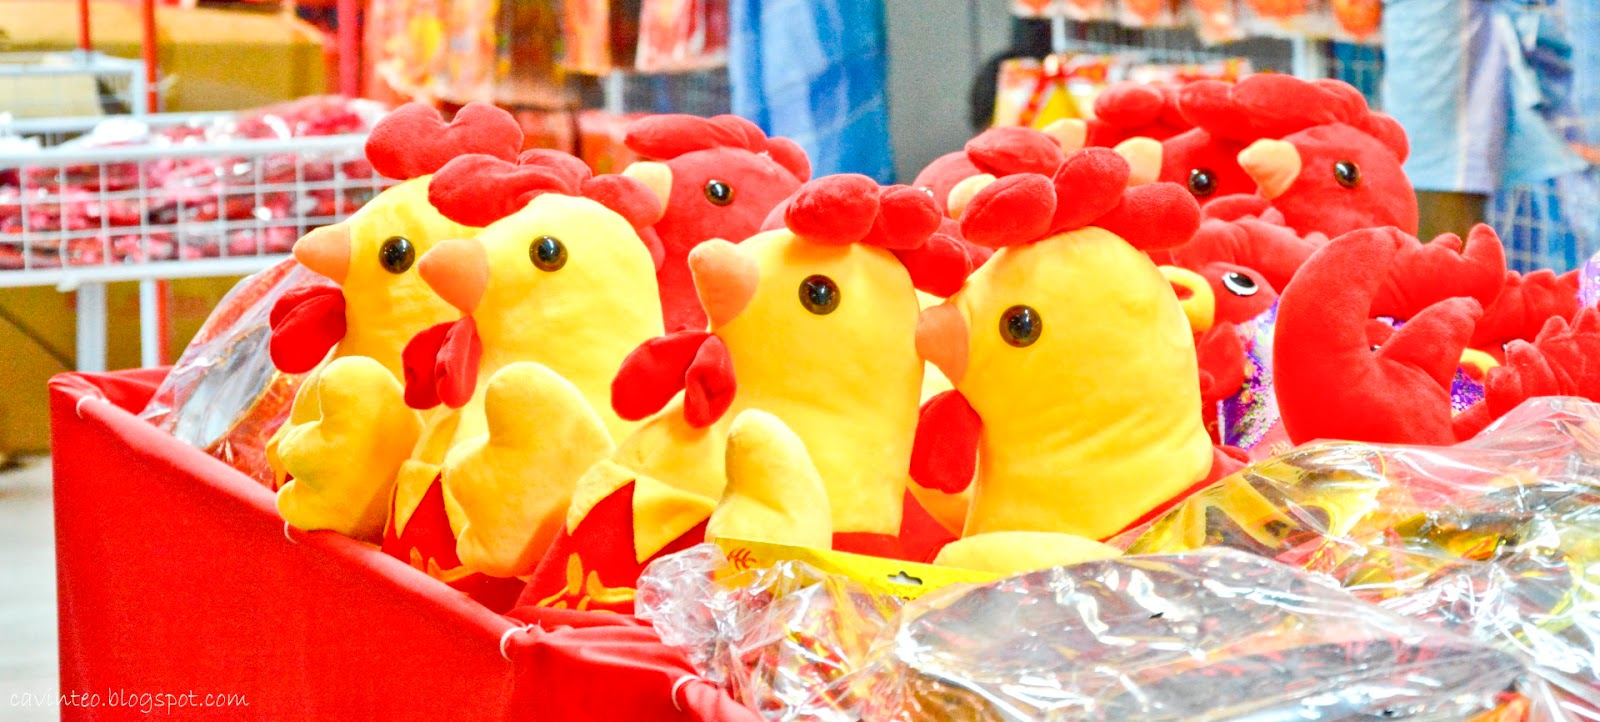 Entree Kibbles Street Light Up Night Decoration For The Year Of The Rooster Chicken 2017